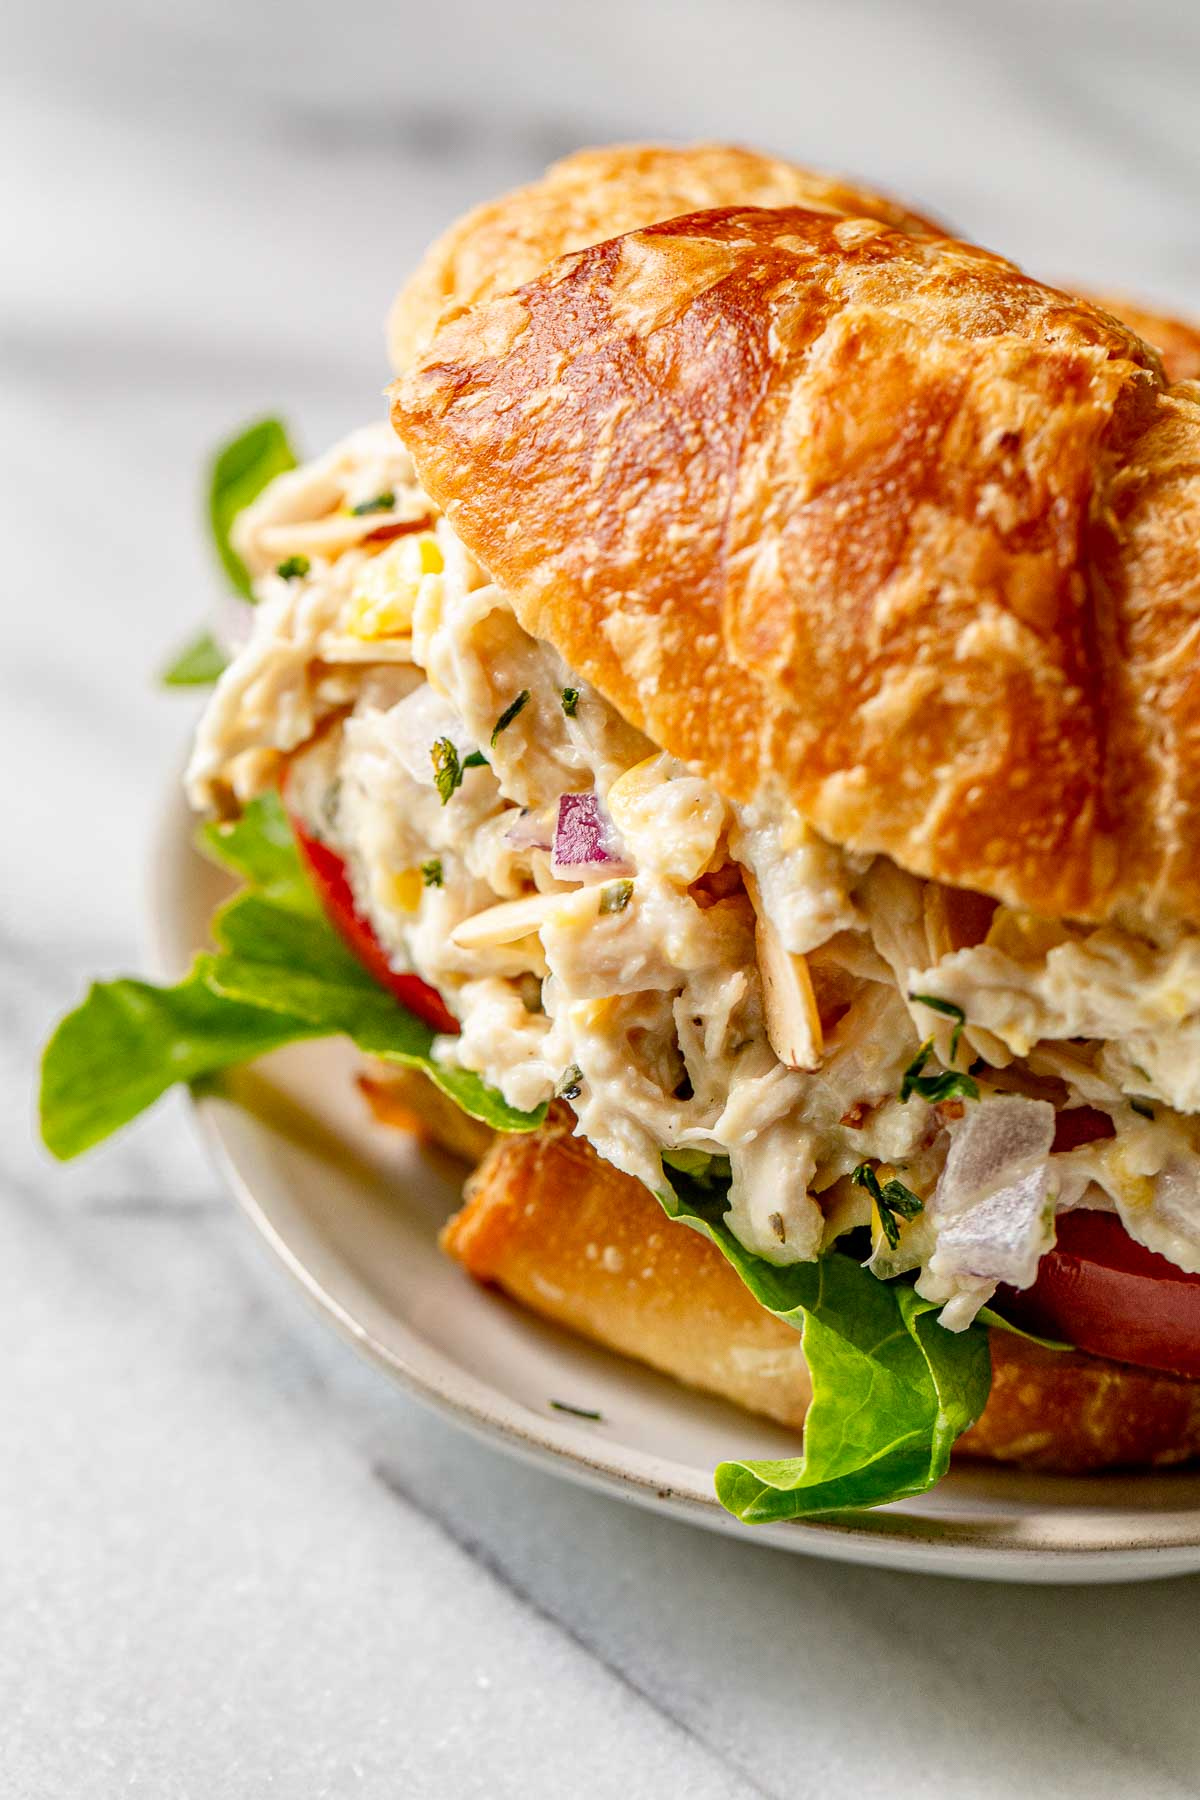 Tarragon chicken salad on a croissant bun.